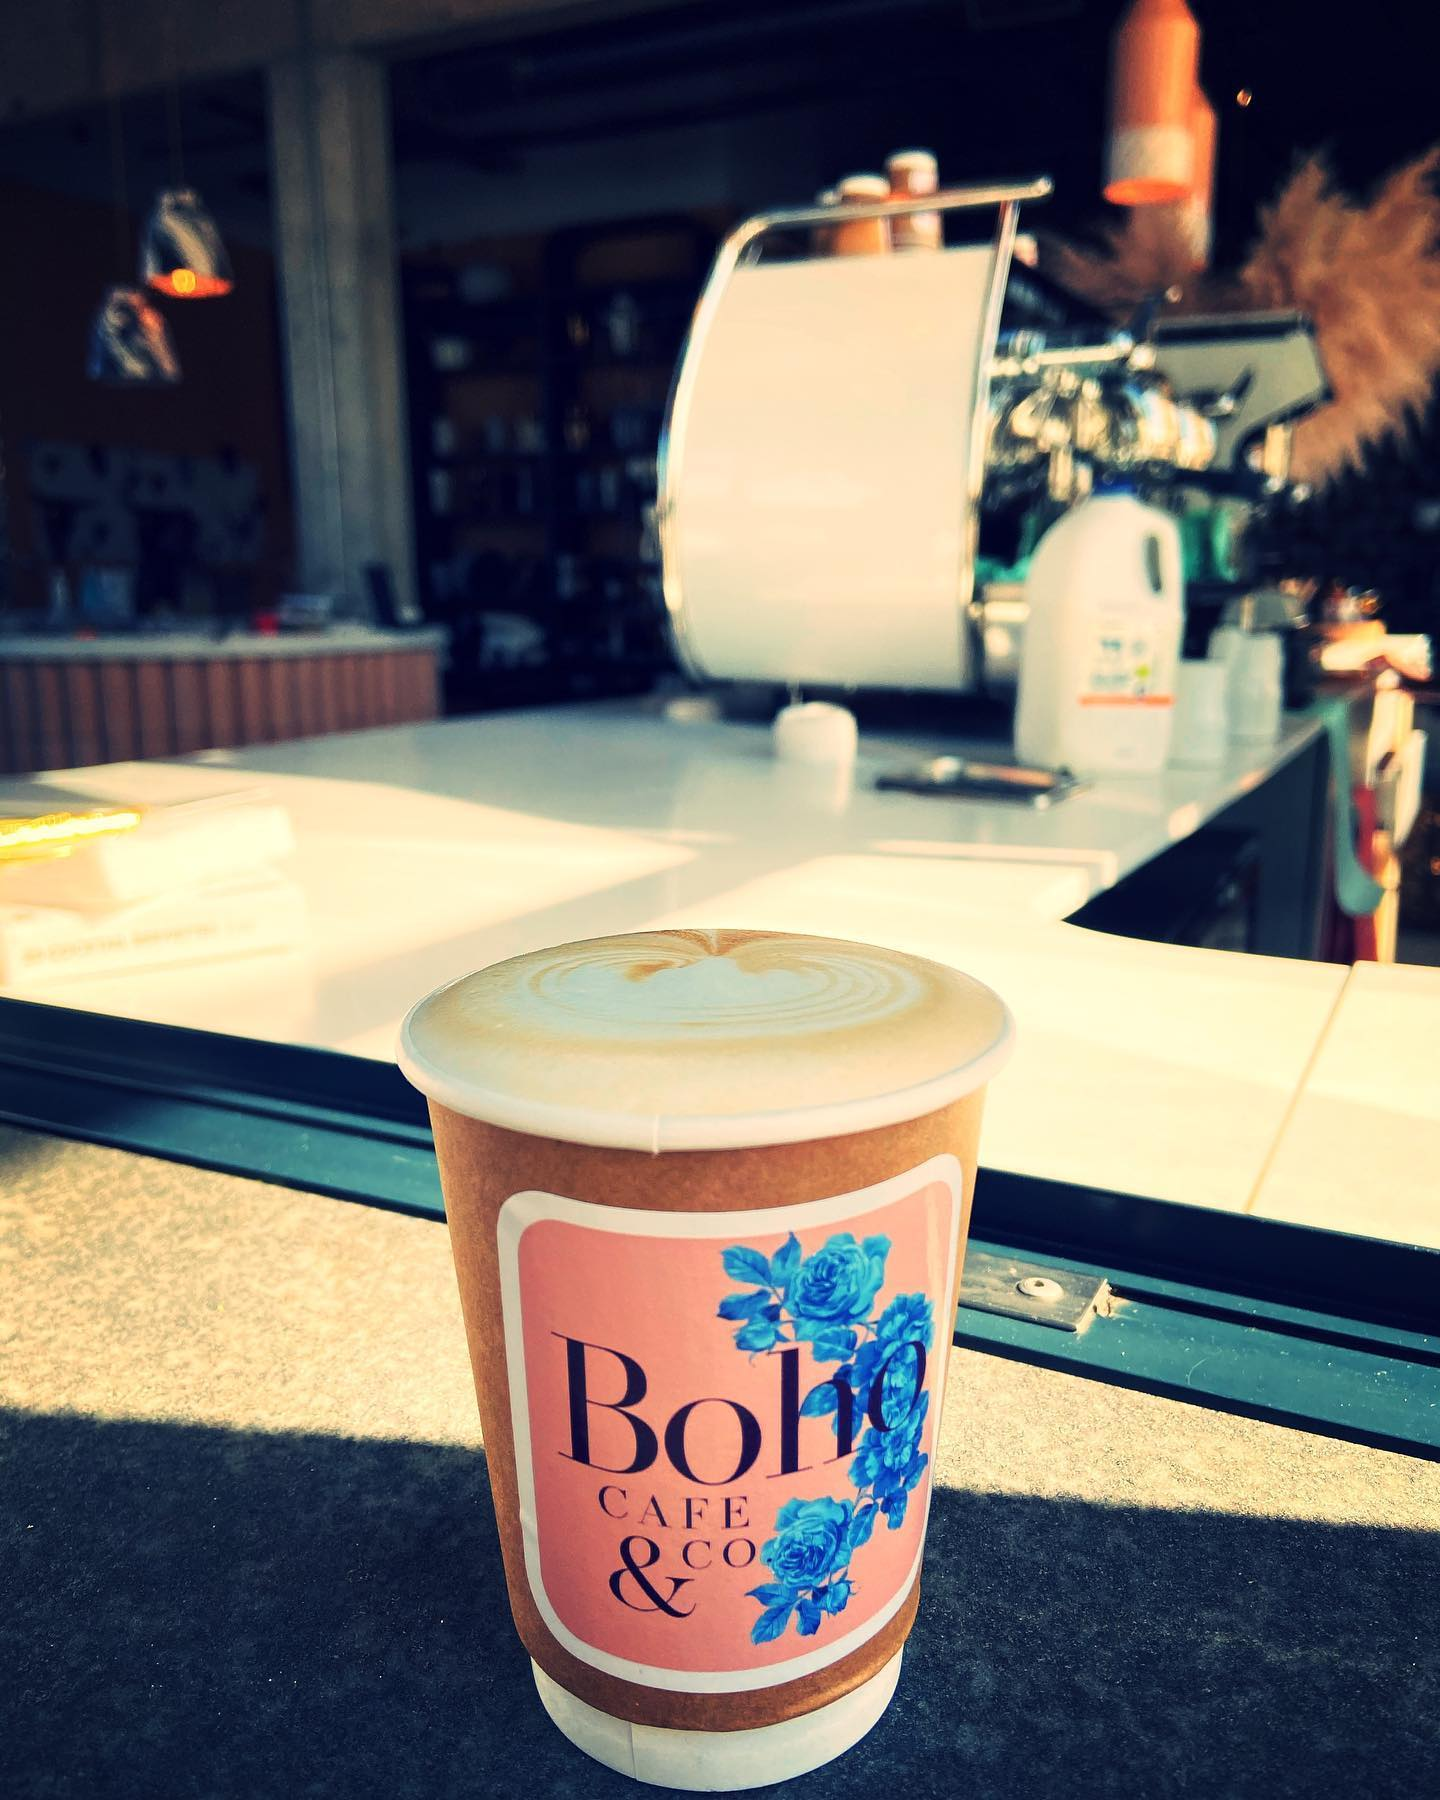 My first commercial cappucino since Lockdown at Boho Cafe & Co in RandSteam Shopping Centre. Taste Felt like the old days when my grandparents used to take us for Coffee & Toasted Cheese at Jan Smuts airport. Missed my Coffee. Our Coffee Shout of the week @bohocafeco